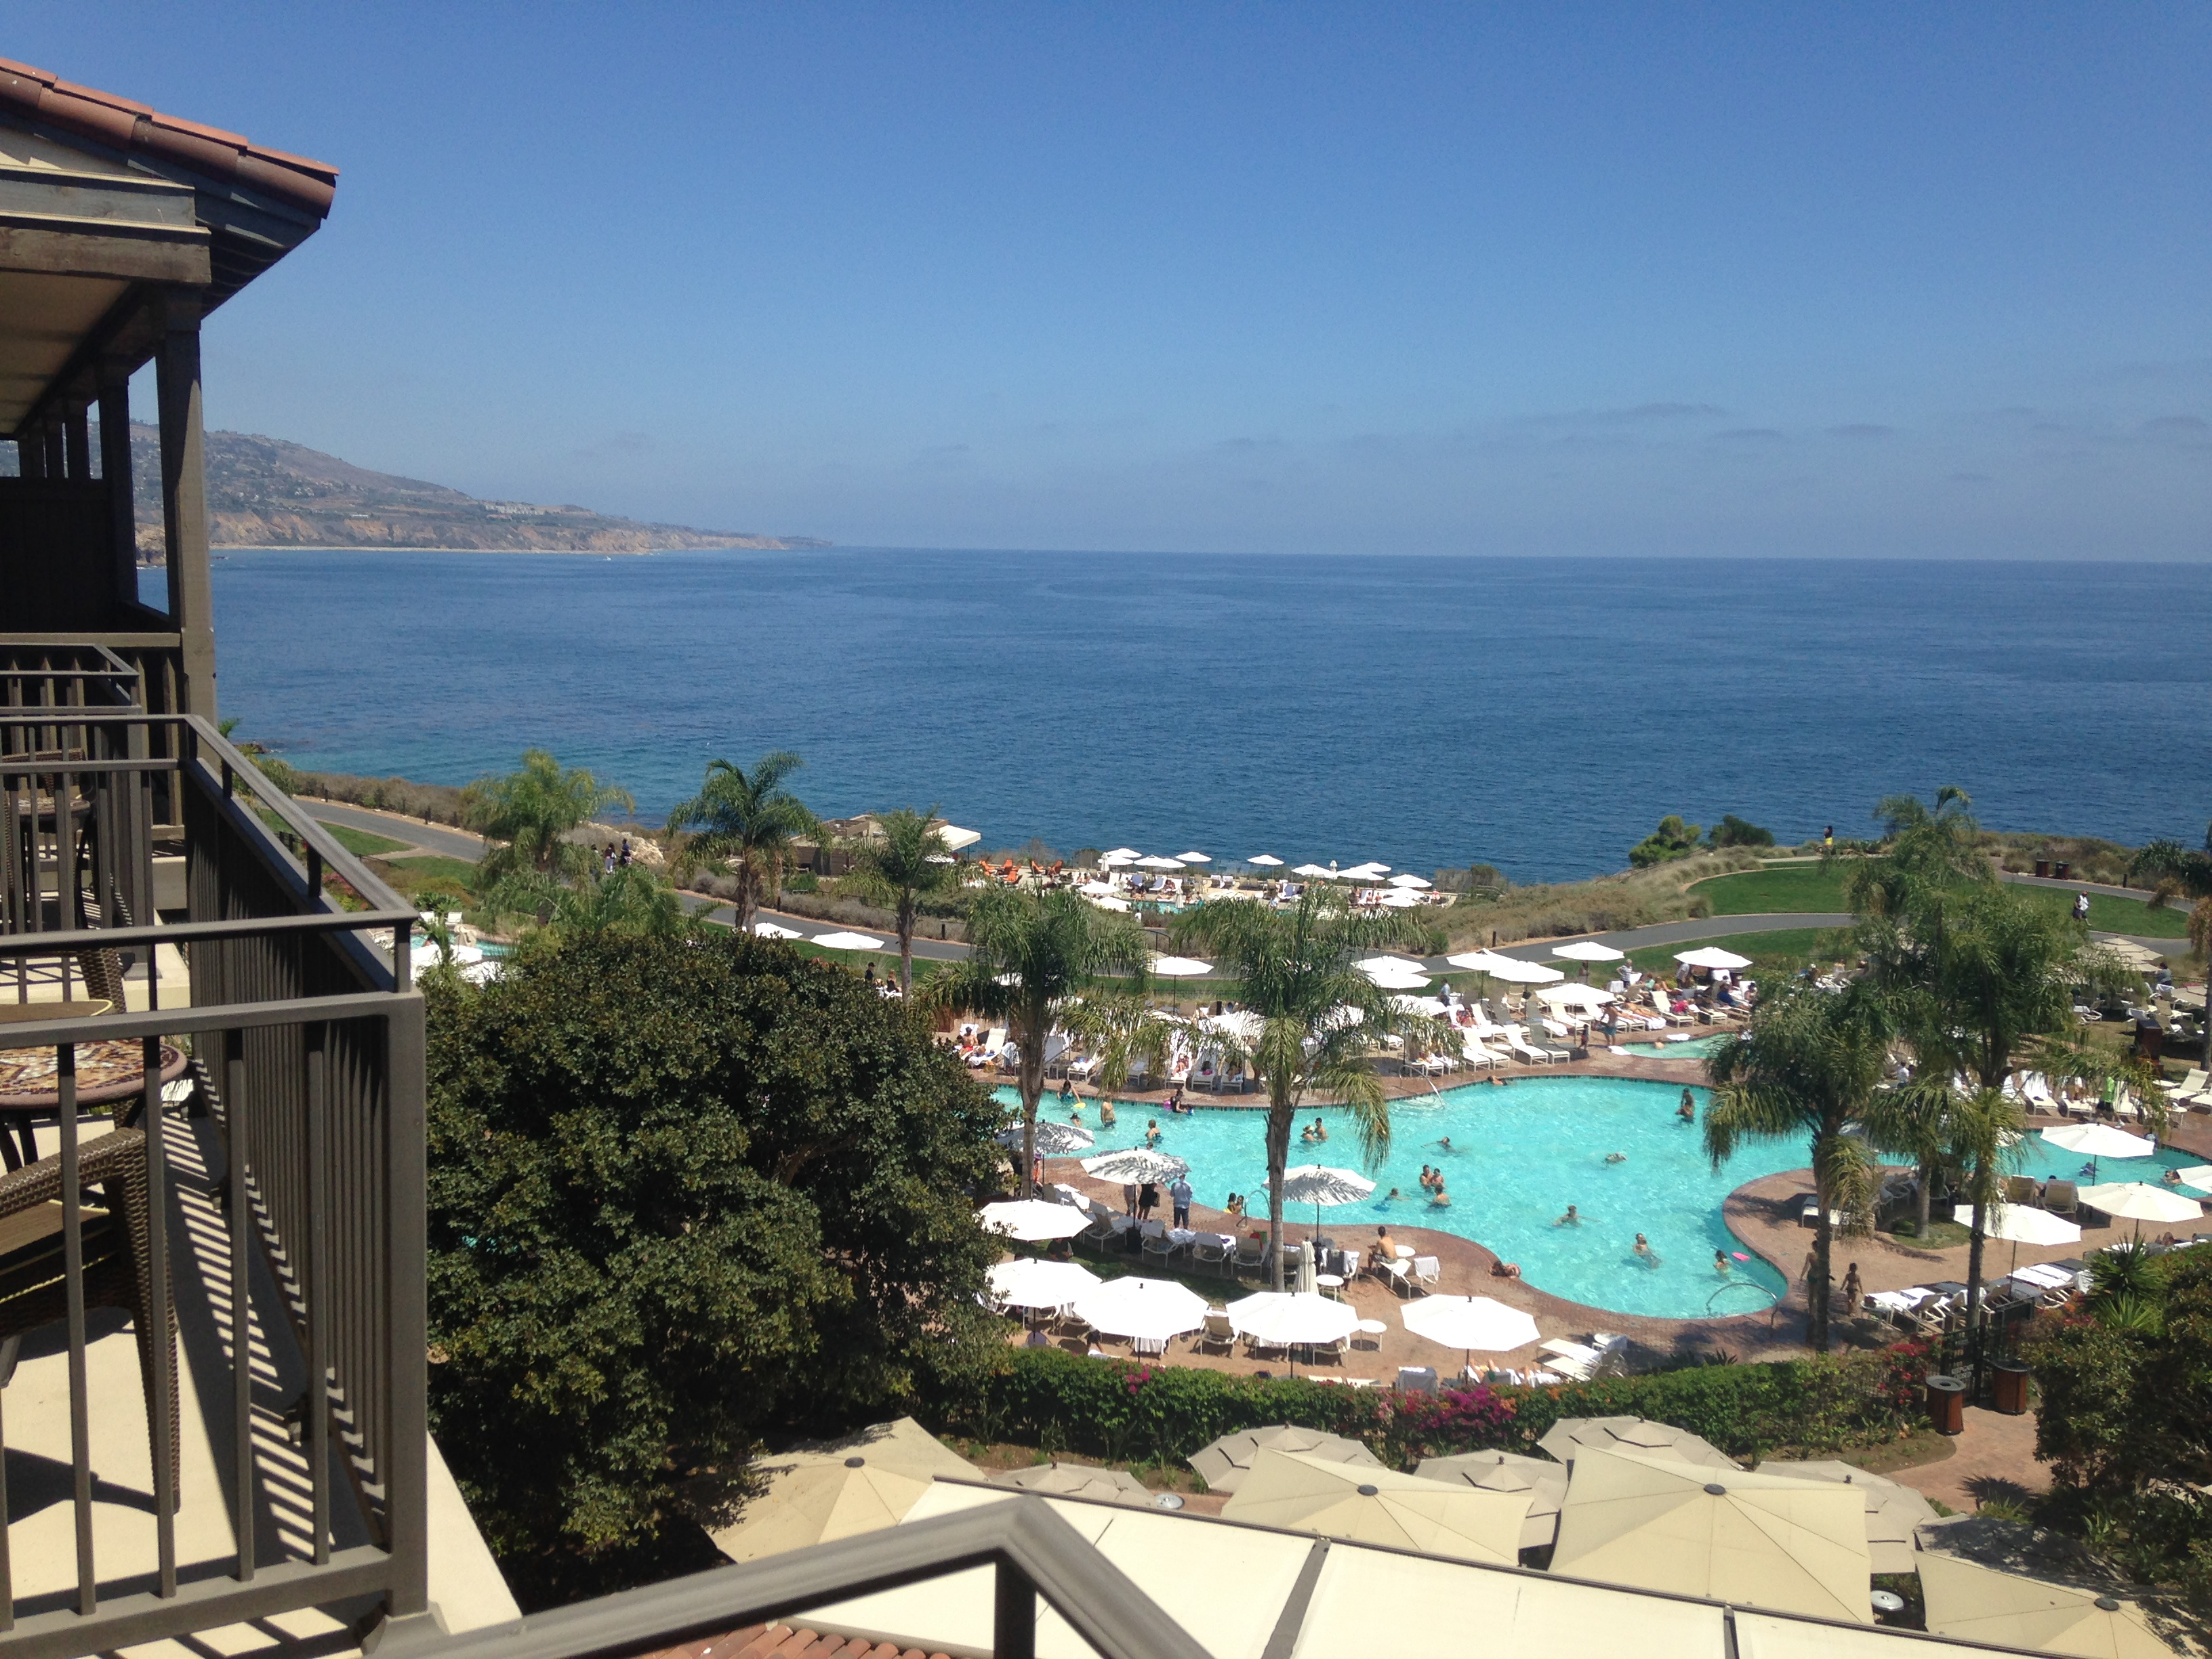 Terranea – Ocean Views from Every Angle – Dine, Travel & Entertainment